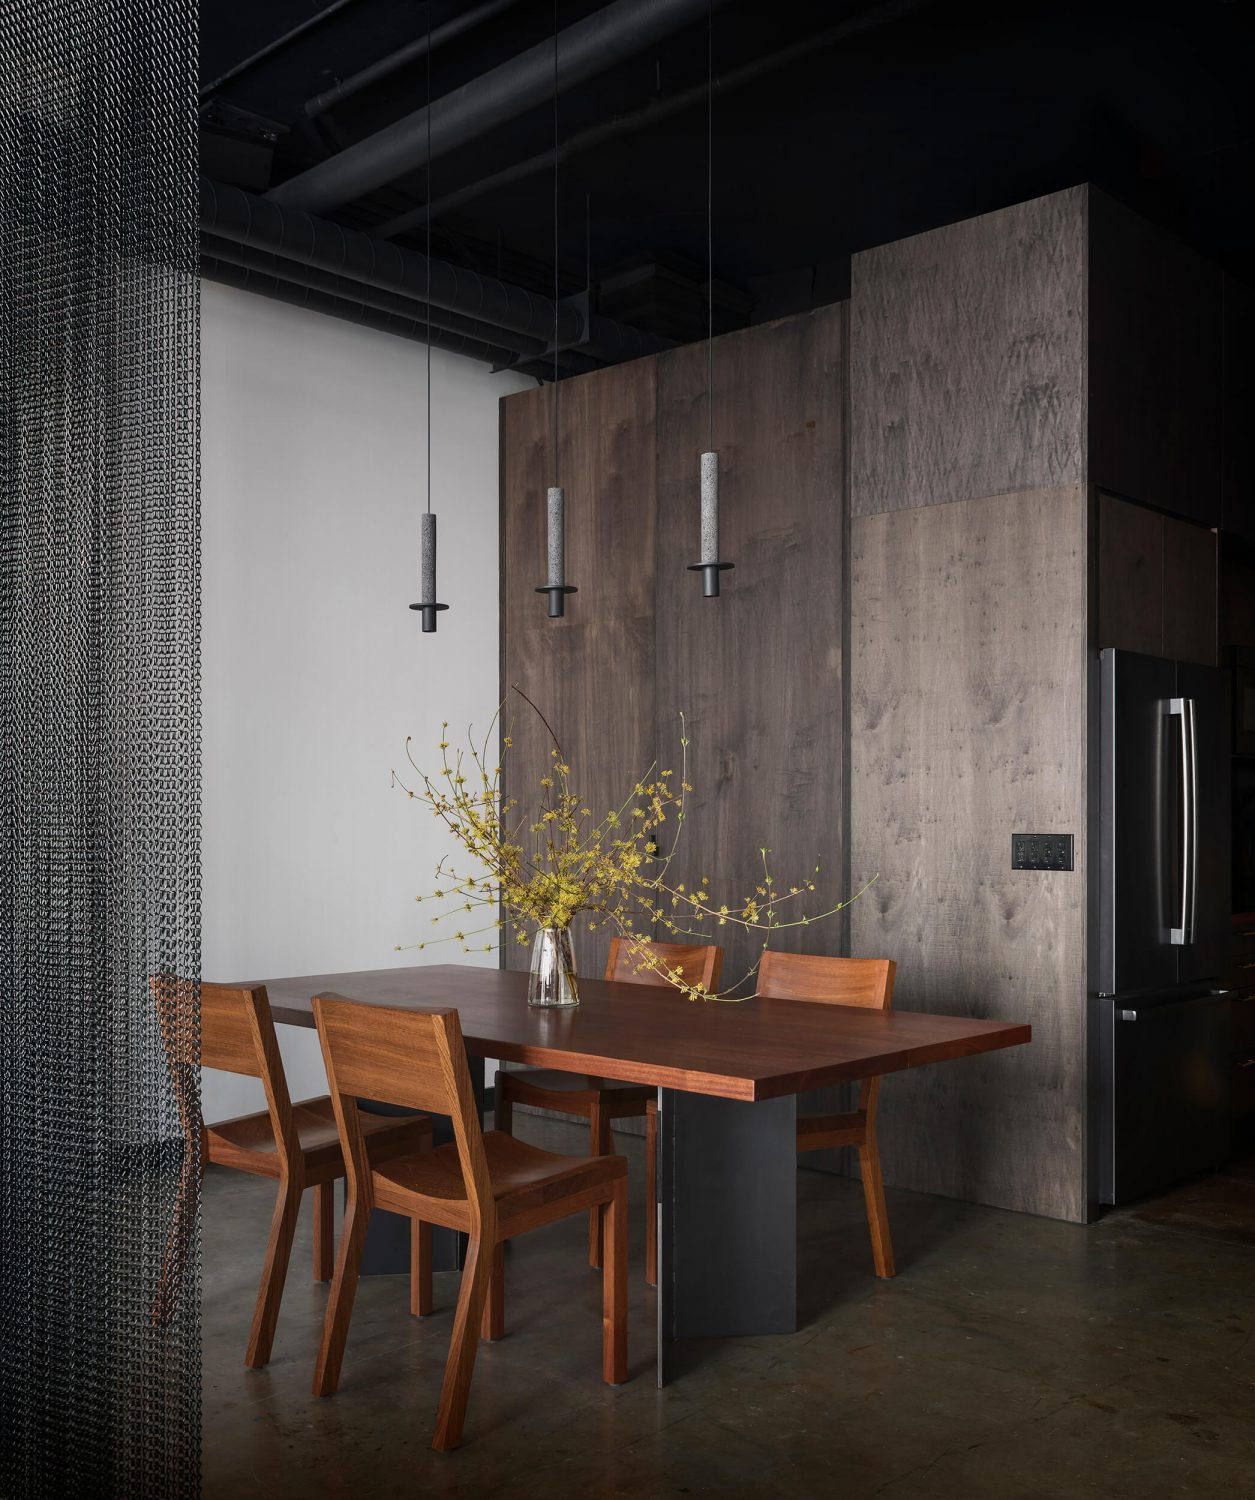 Western Studio | Downtown Studio Apartment by goCstudio